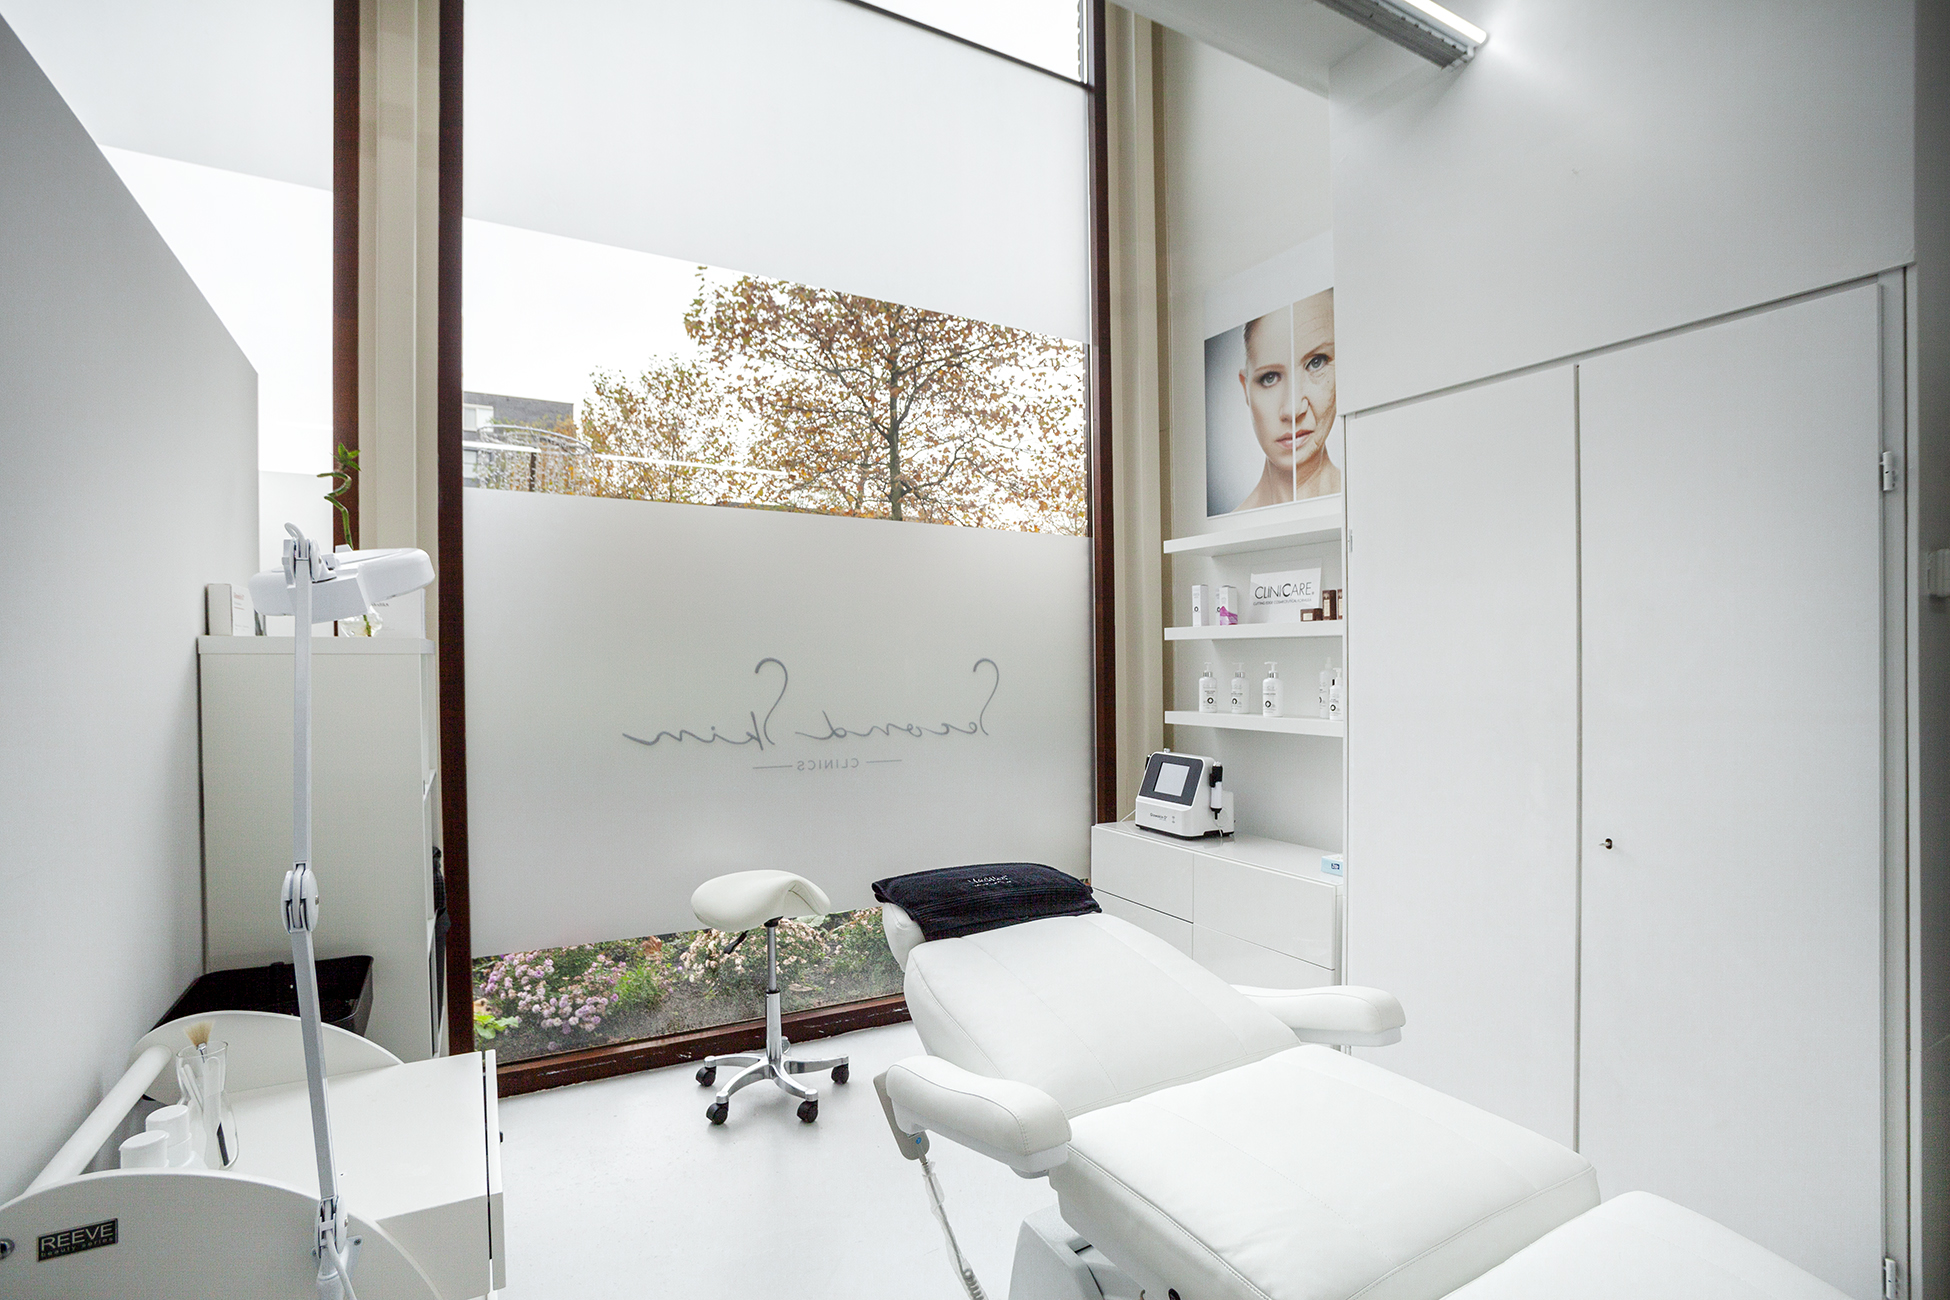 392332_NL_Second_Skin_Clinic_01